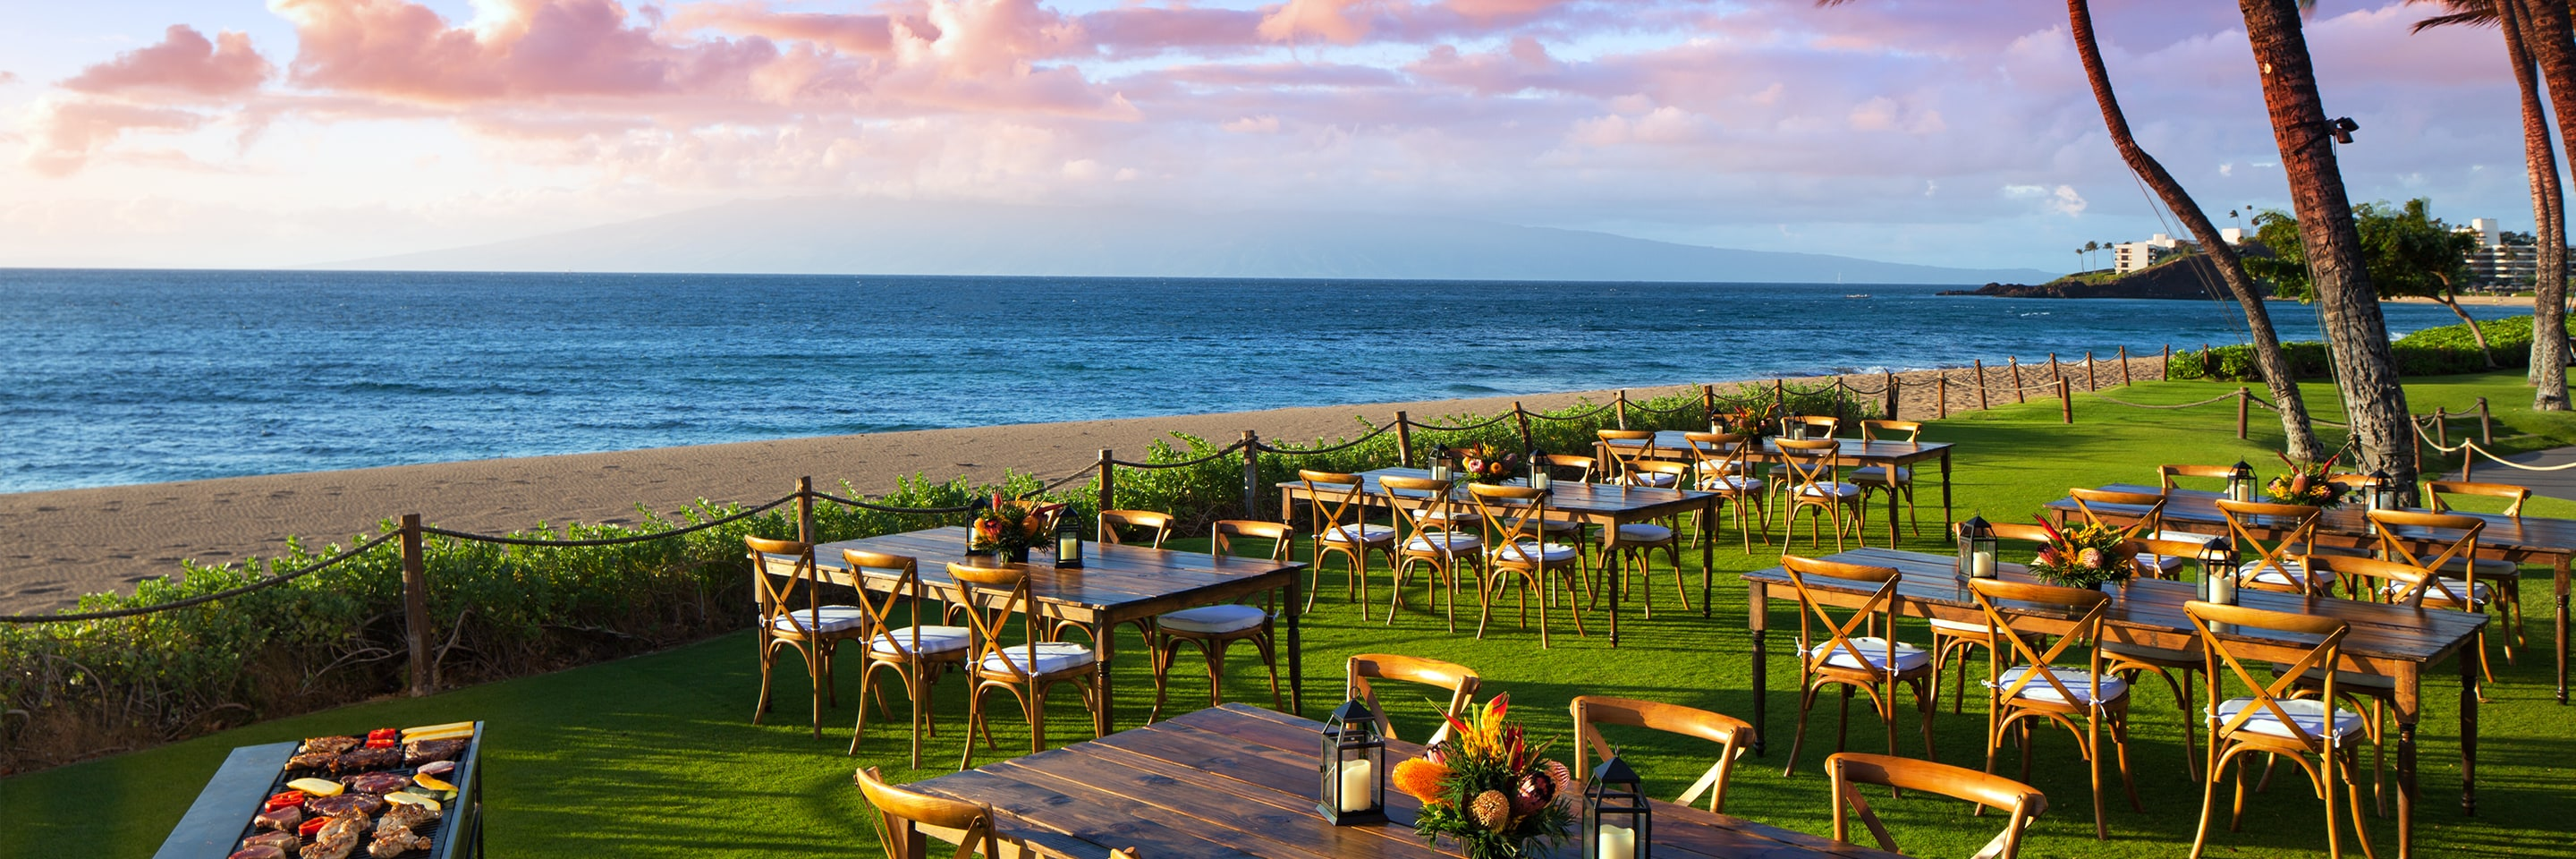 Outdoor dining area on the beach